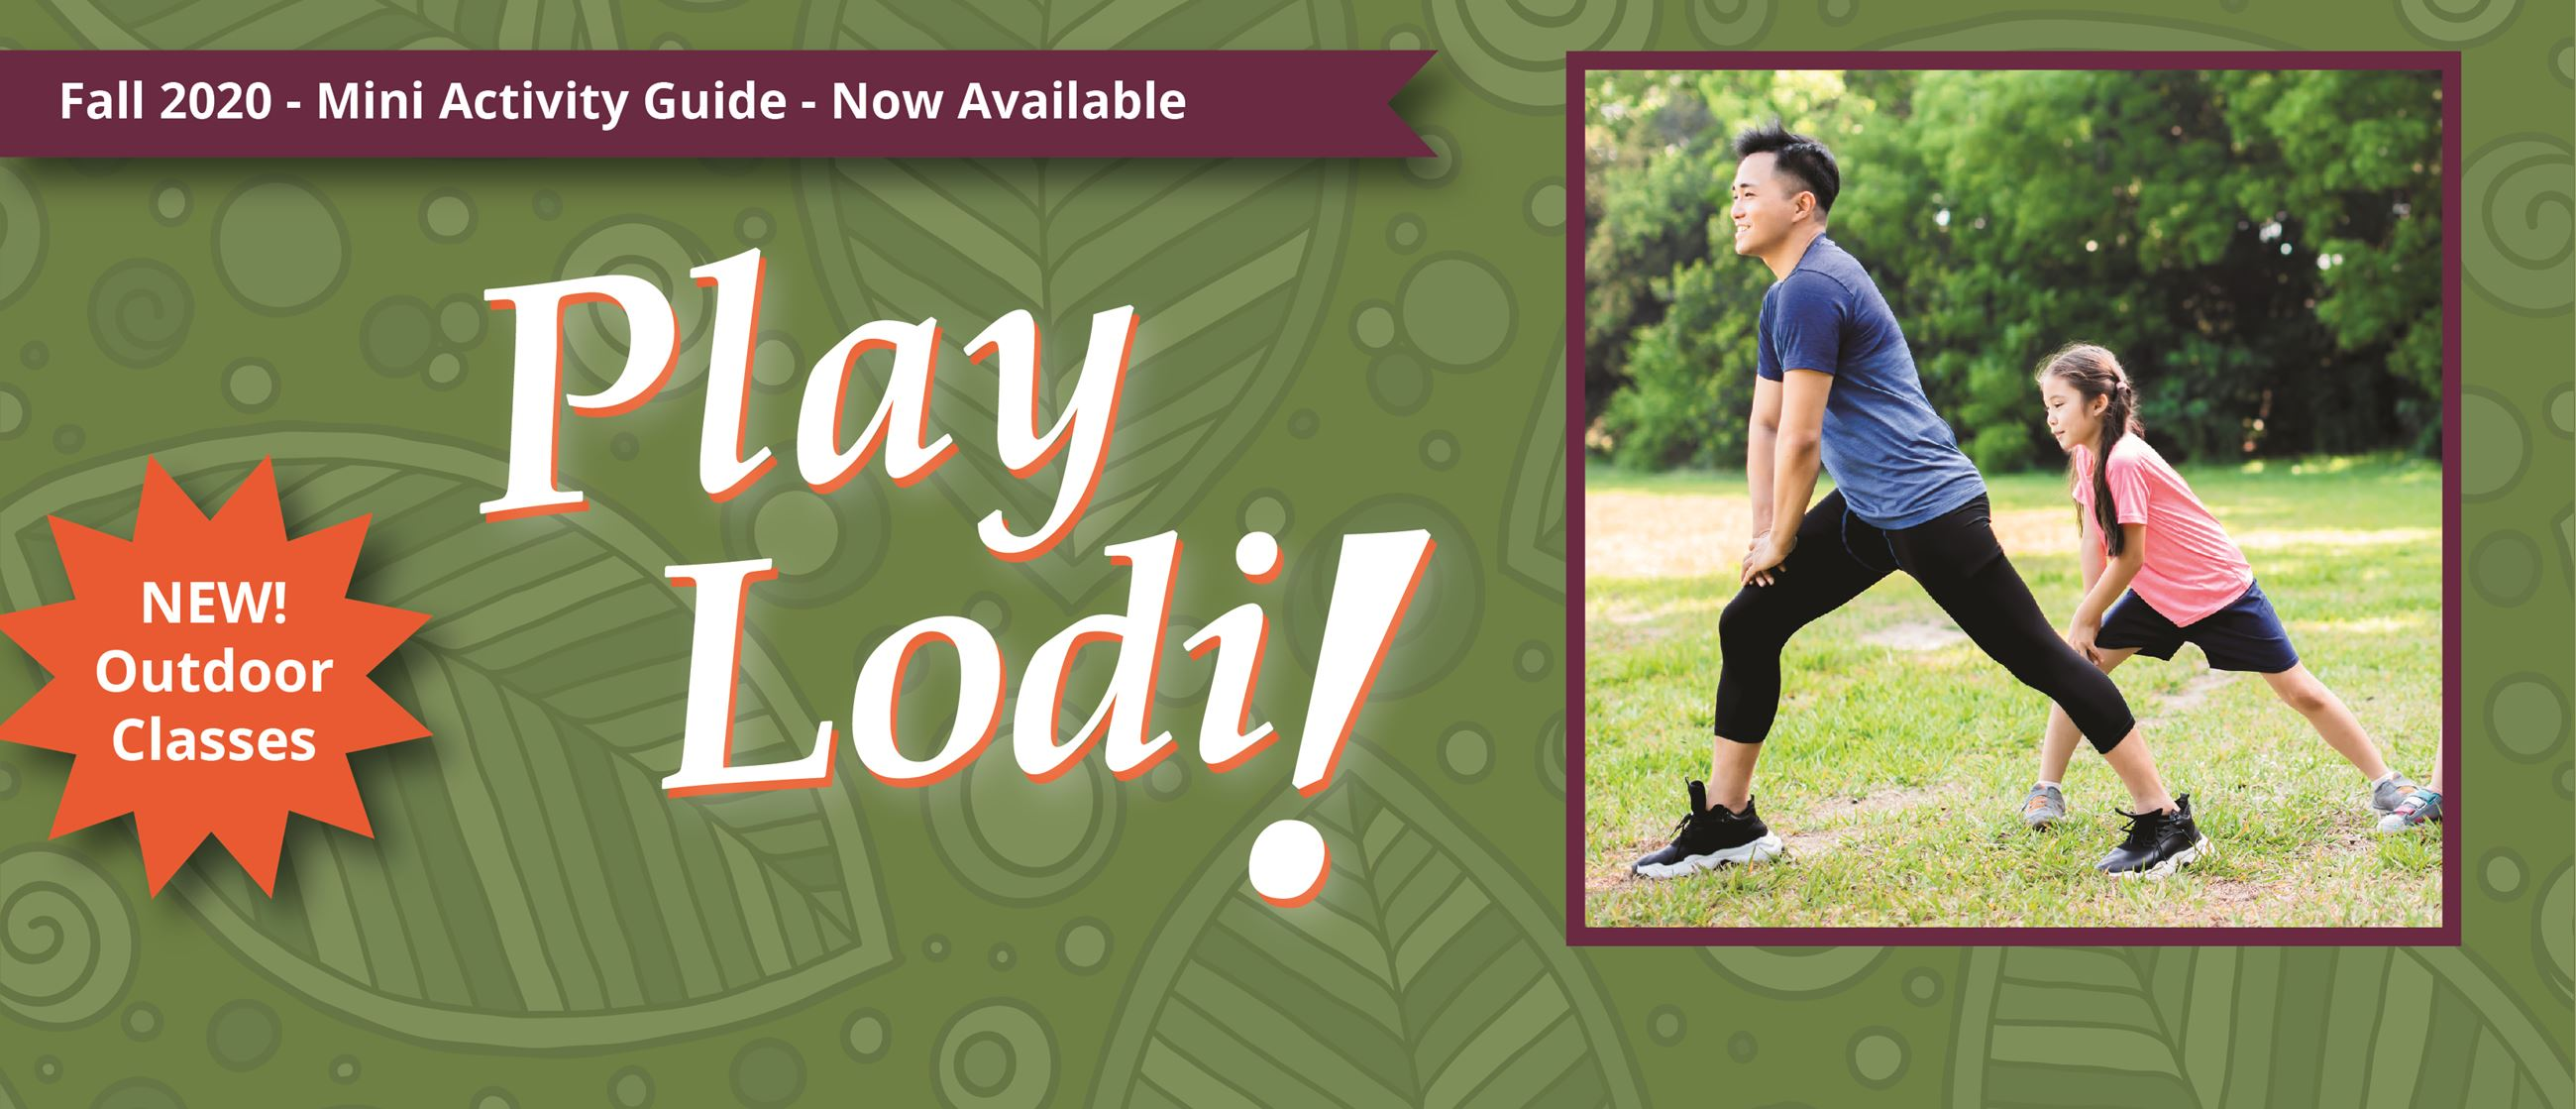 Play Lodi Fall 2020-01